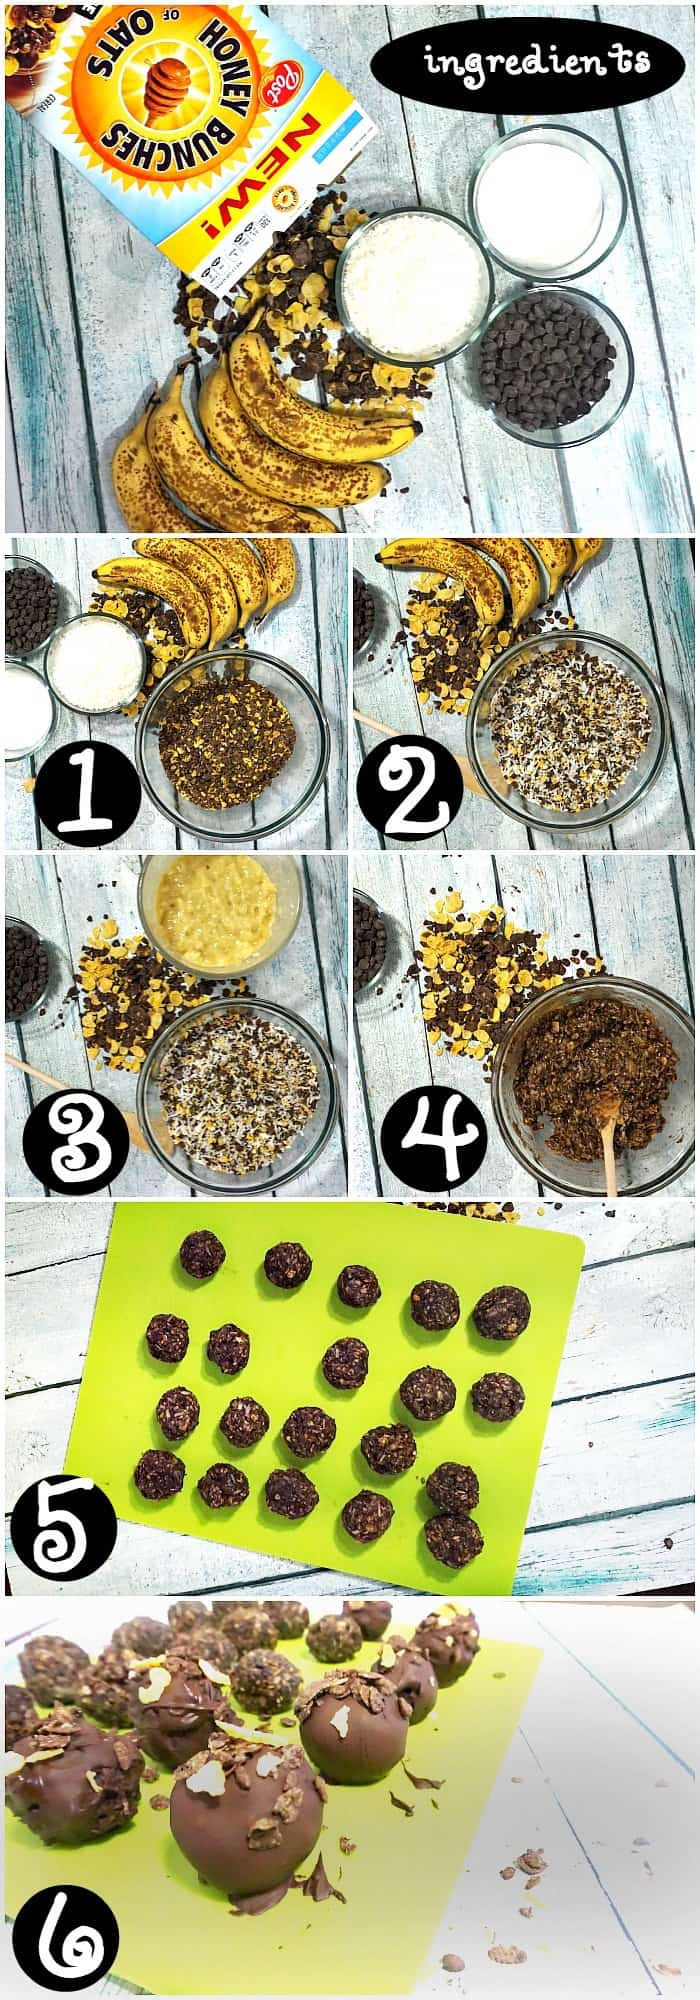 tutorial for making chocolate breakfast balls with coconut and banana